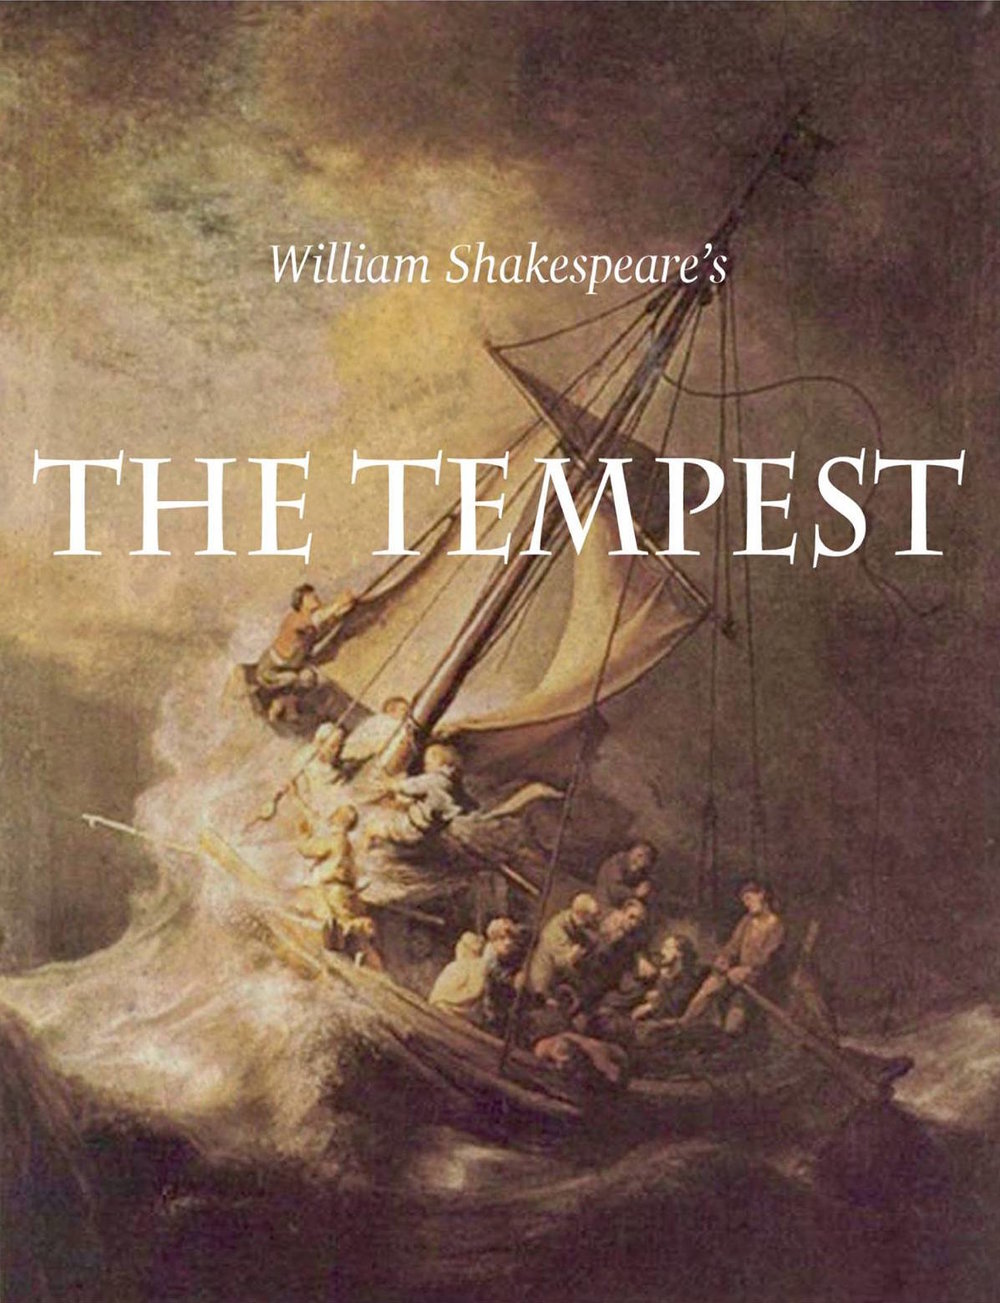 The Tempest - King's College Theatre, Wilkes-Barre, PAPlaywright: WIlliam ShakespeareDirector: Sheileen GodwinCostume Designer: Autumn J. GalkaScenic Designer: Dave ReynoldsLighting Designer: Erin Jones